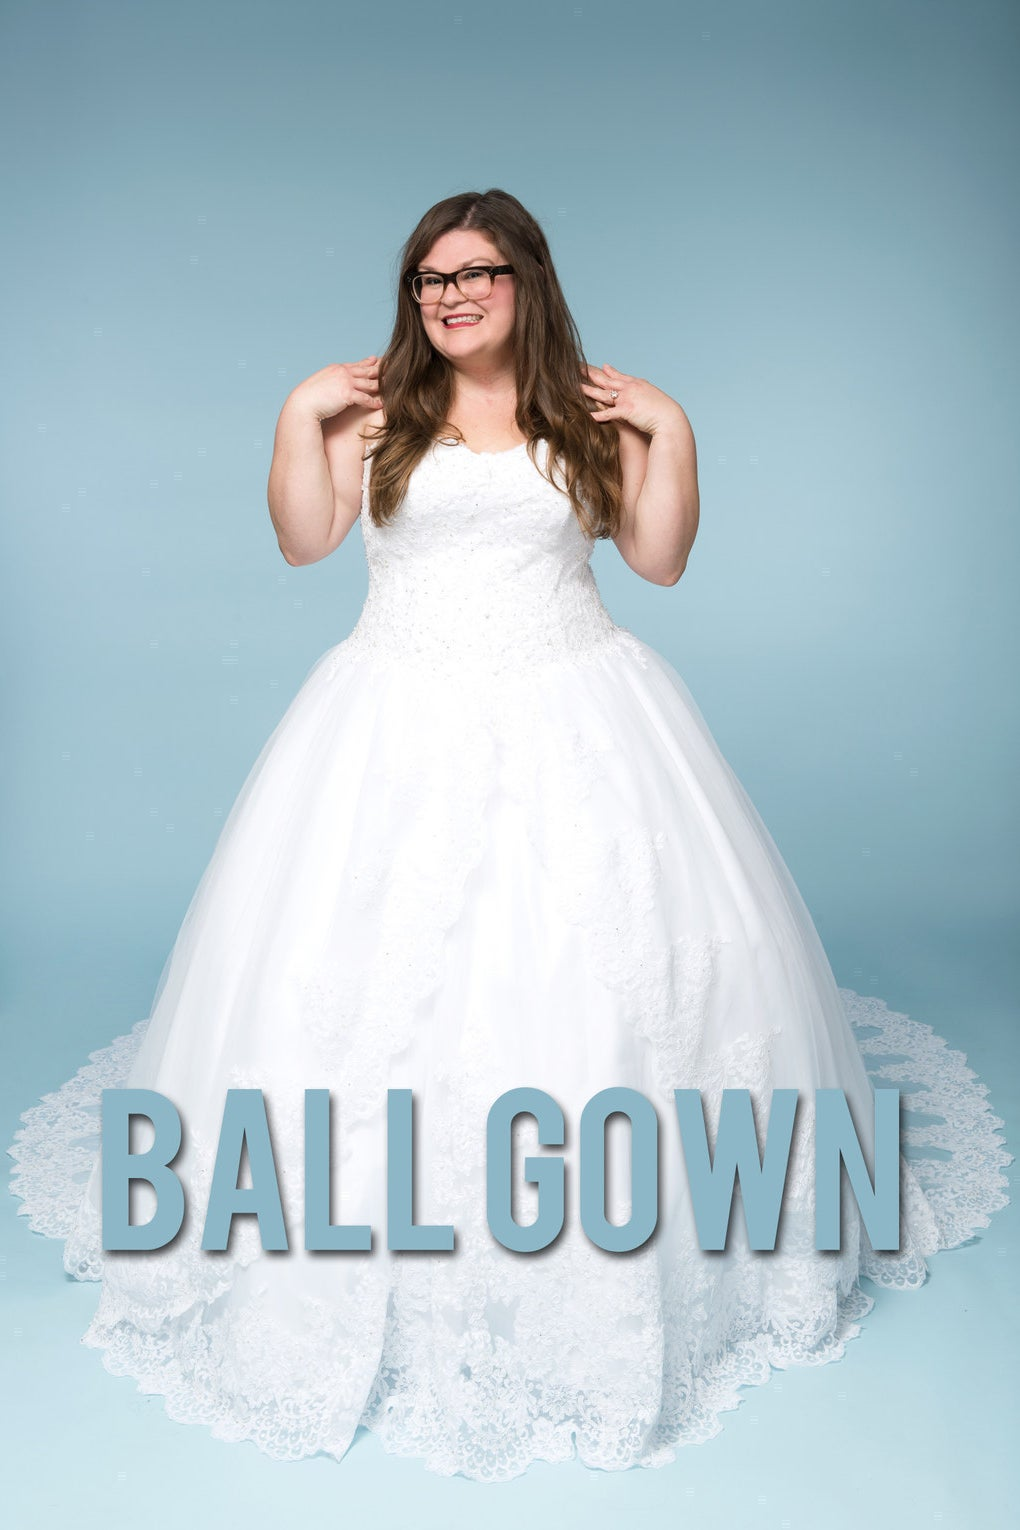 33990800e4d39 AND LOL 38 gallons of trash bag is clearly no match for the ball gown, the  bounce house of dresses: